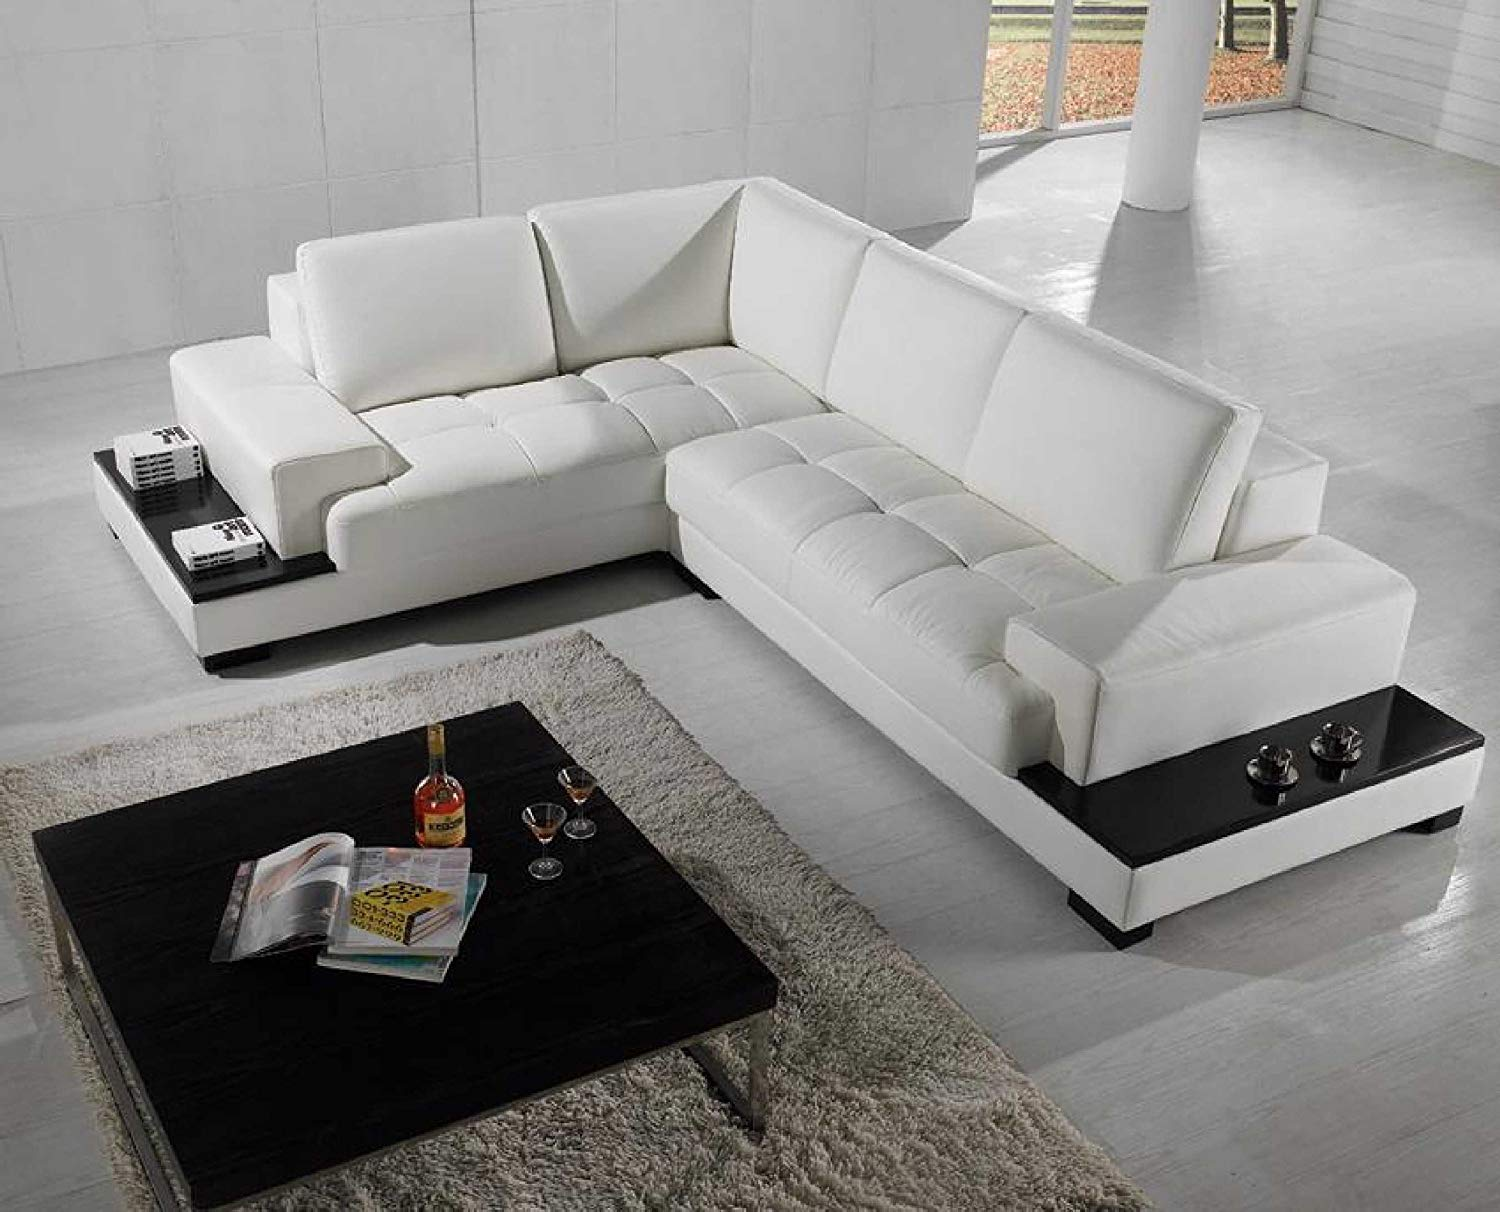 Modern Sectional Sofas amazon.com: vig furniture t71 modern leather sectional: kitchen u0026 dining EXYHEIN